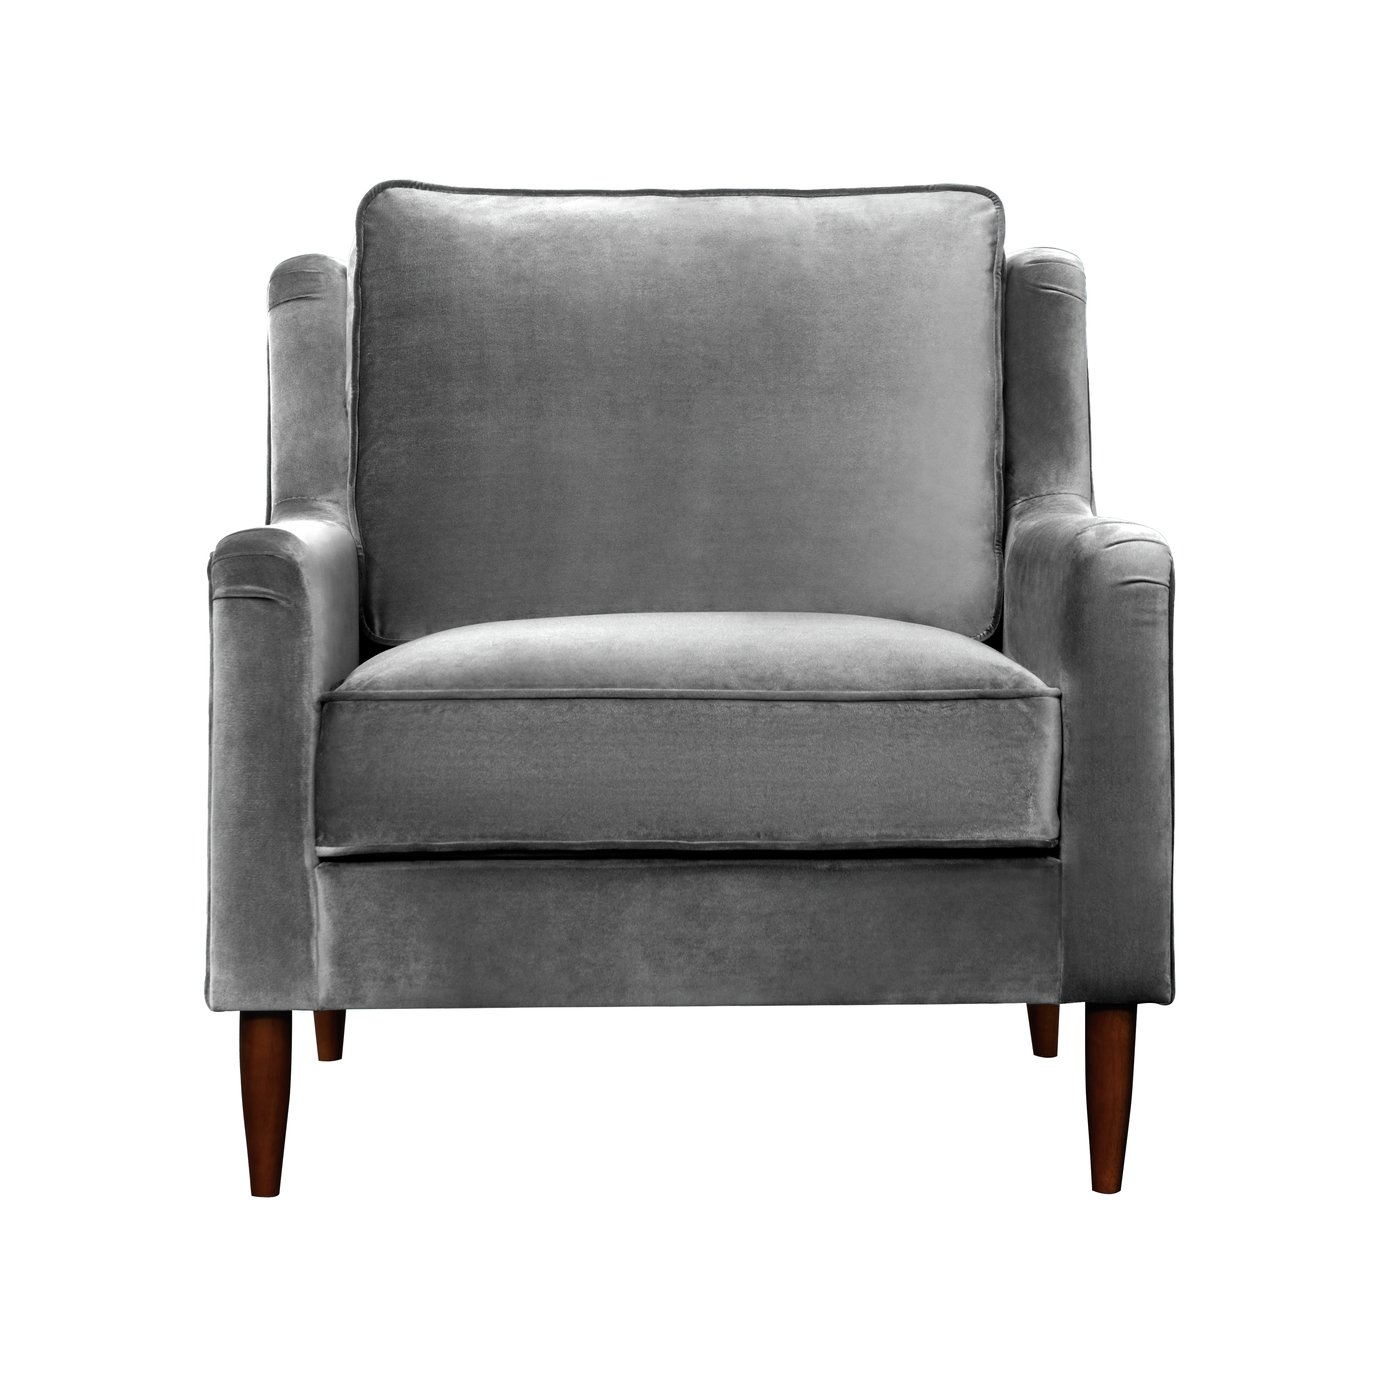 Argos Home Jacob Velvet Armchair - Grey